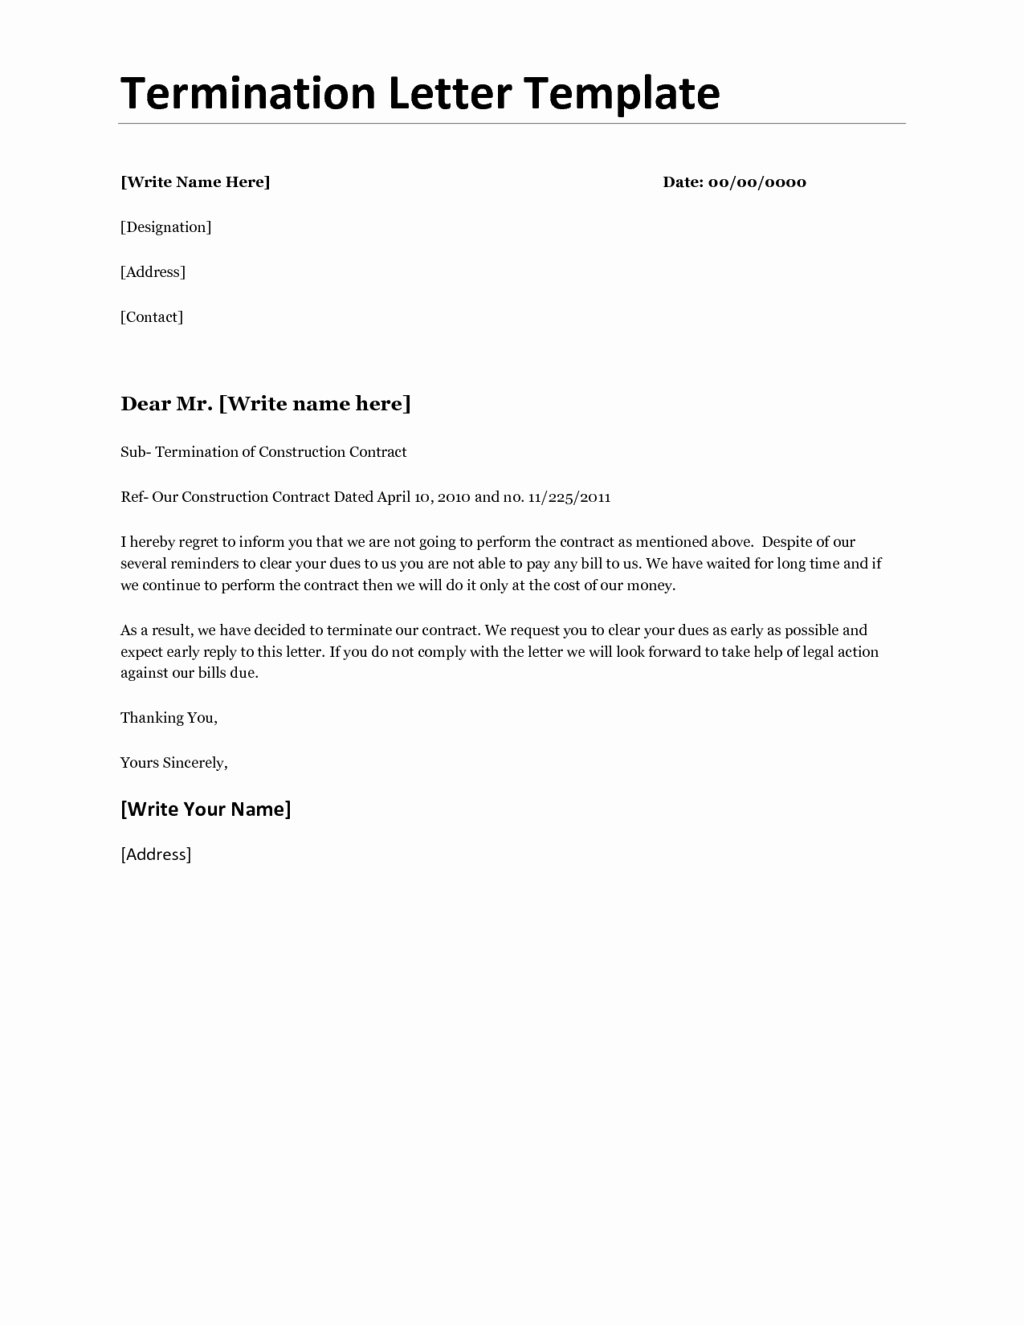 Termination Of Contract Template Unique Business Contract Termination Letter for Non Renewal